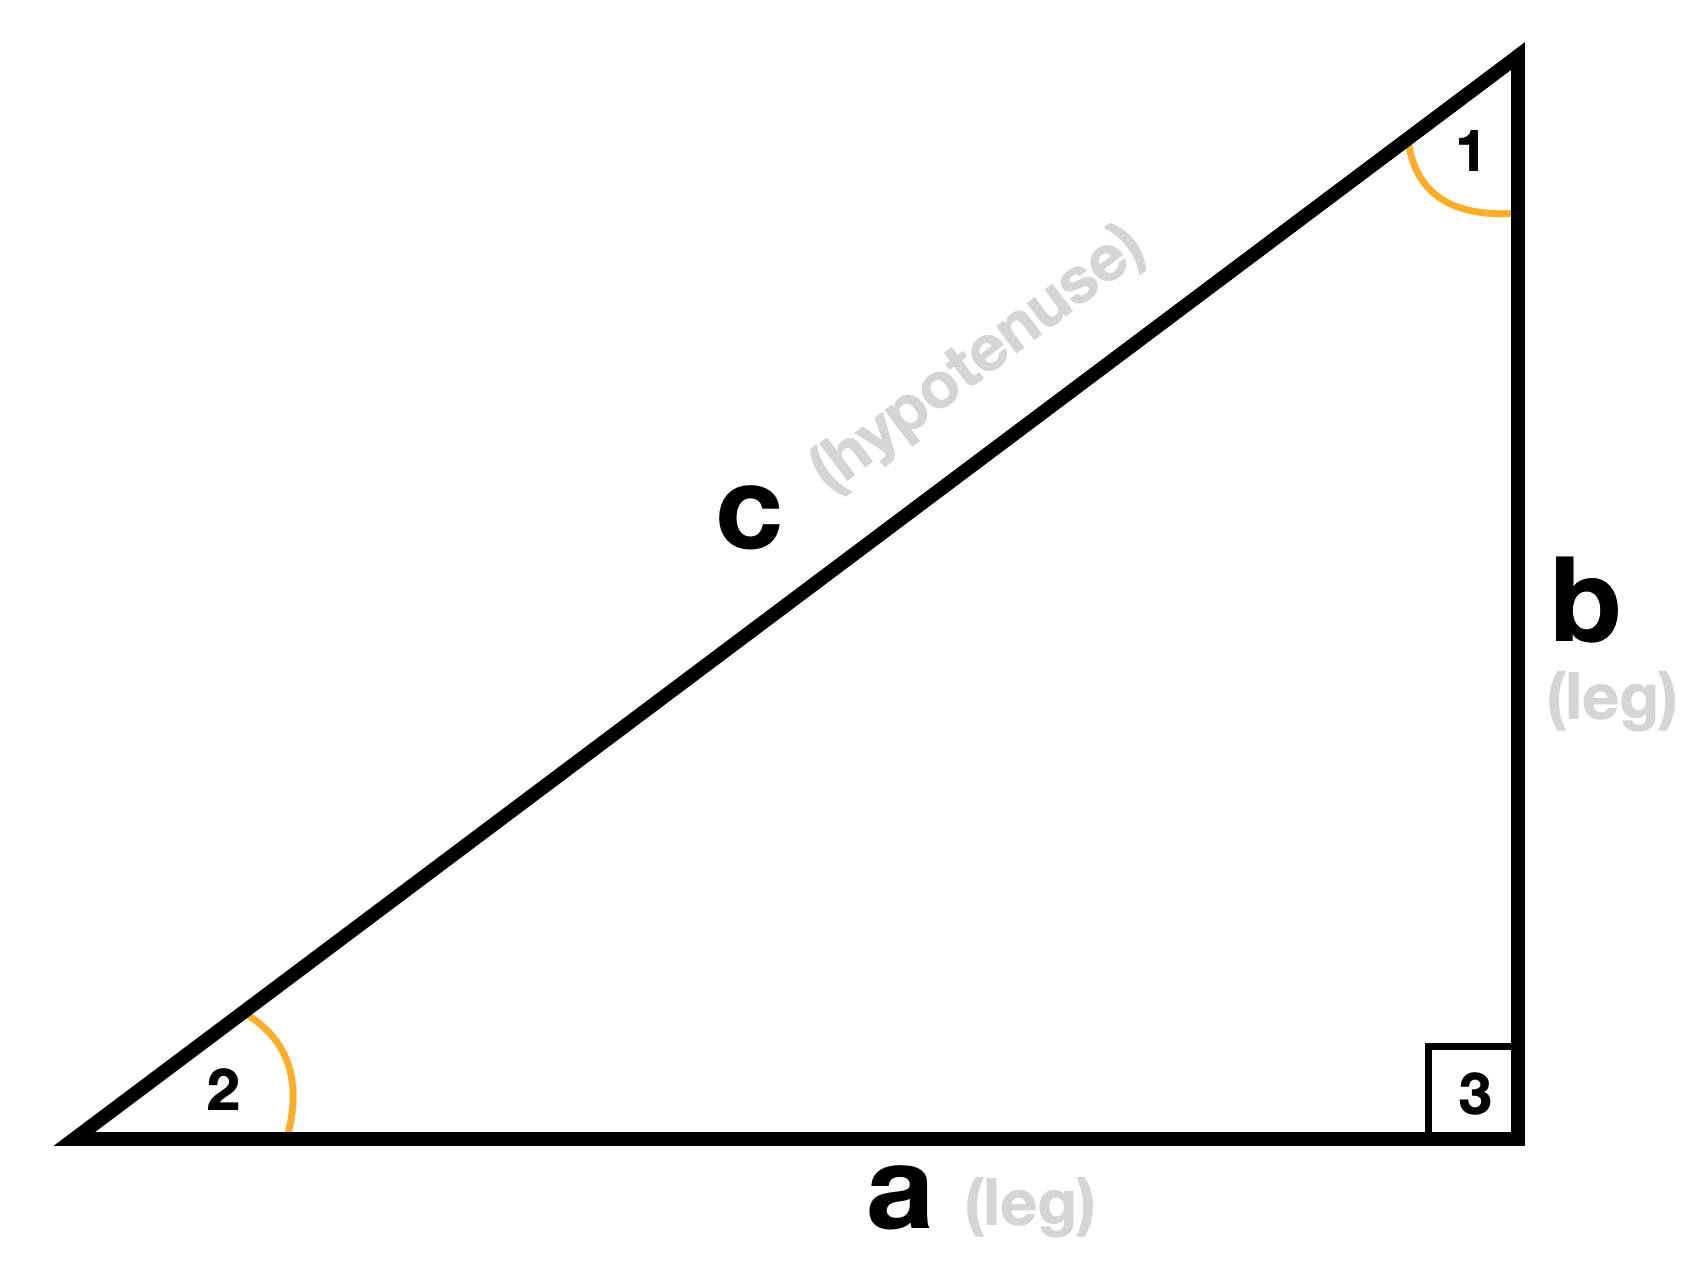 A right triangle